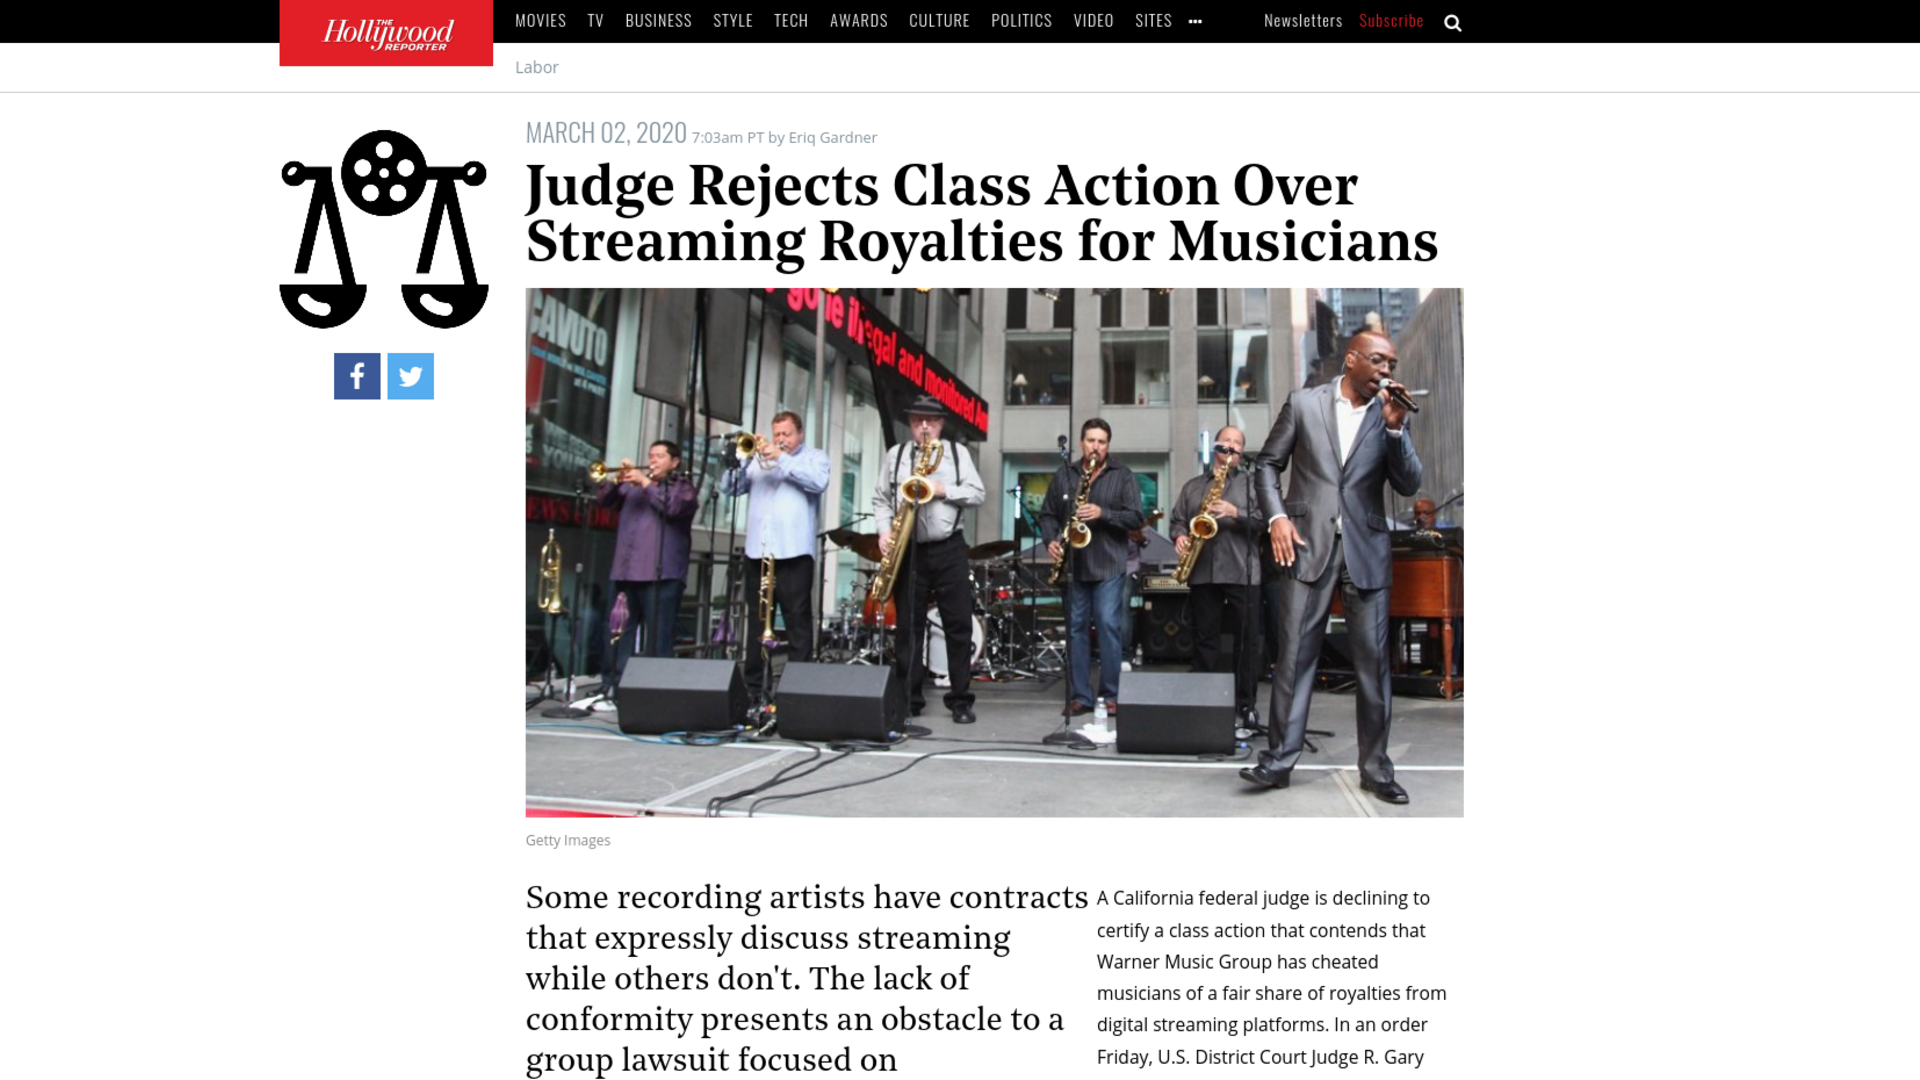 Fairness Rocks News Judge Rejects Class Action Over Streaming Royalties for Musicians